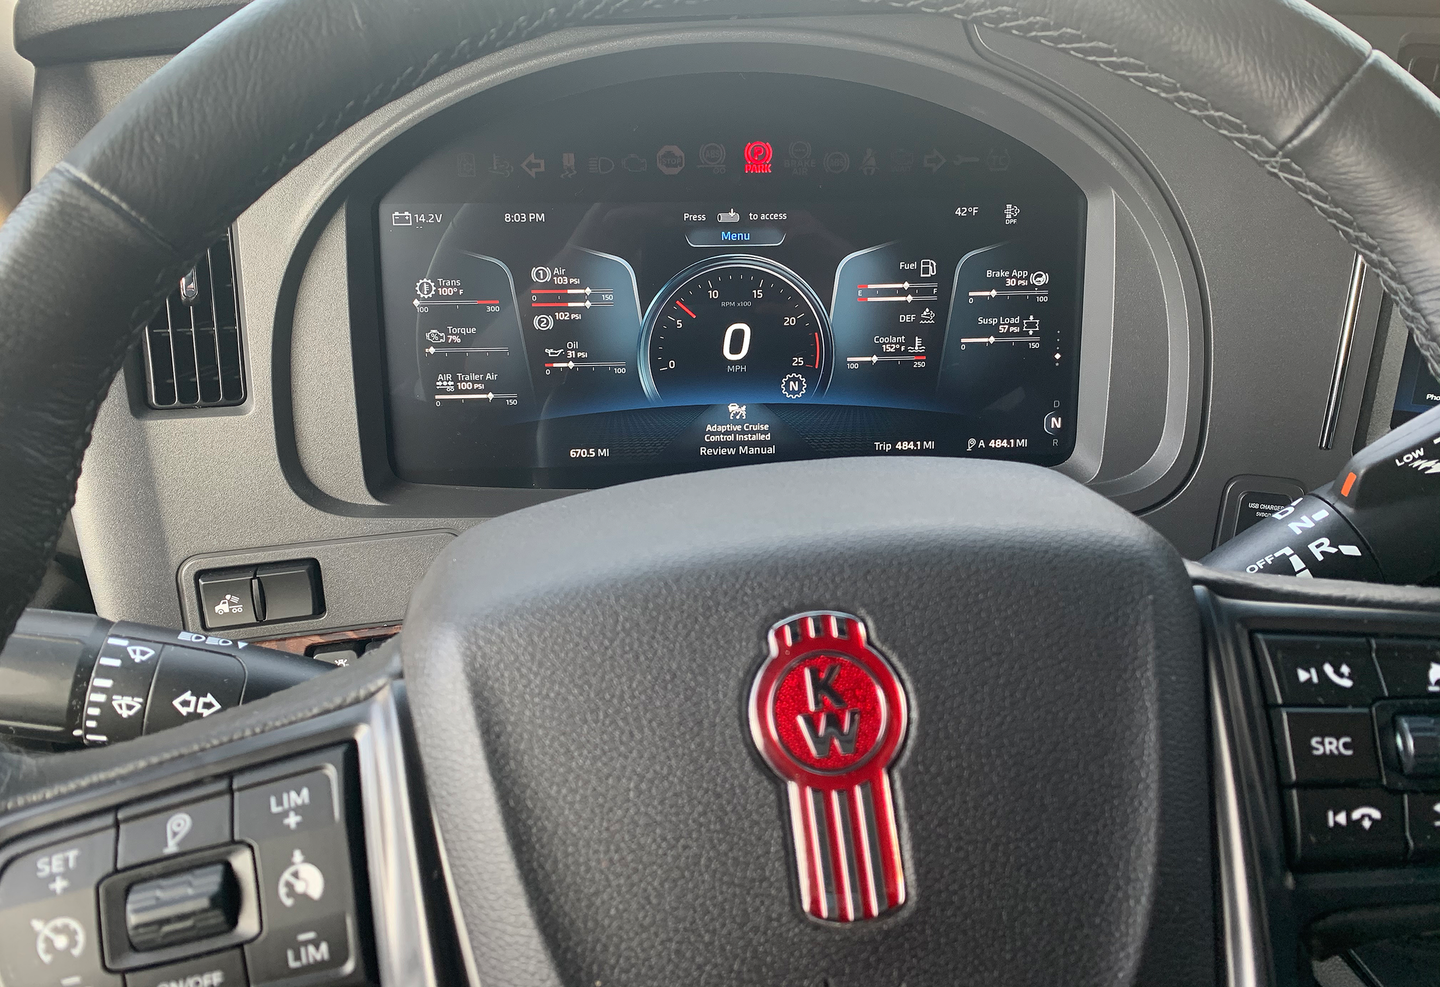 The 15-inch display baked into the T680 is notably larger than the more familiar 12-inch (+/-) displays borrowed from automotive partners or suppliers, and the screen itself is fully customizable via a roller switch in the steering wheel.